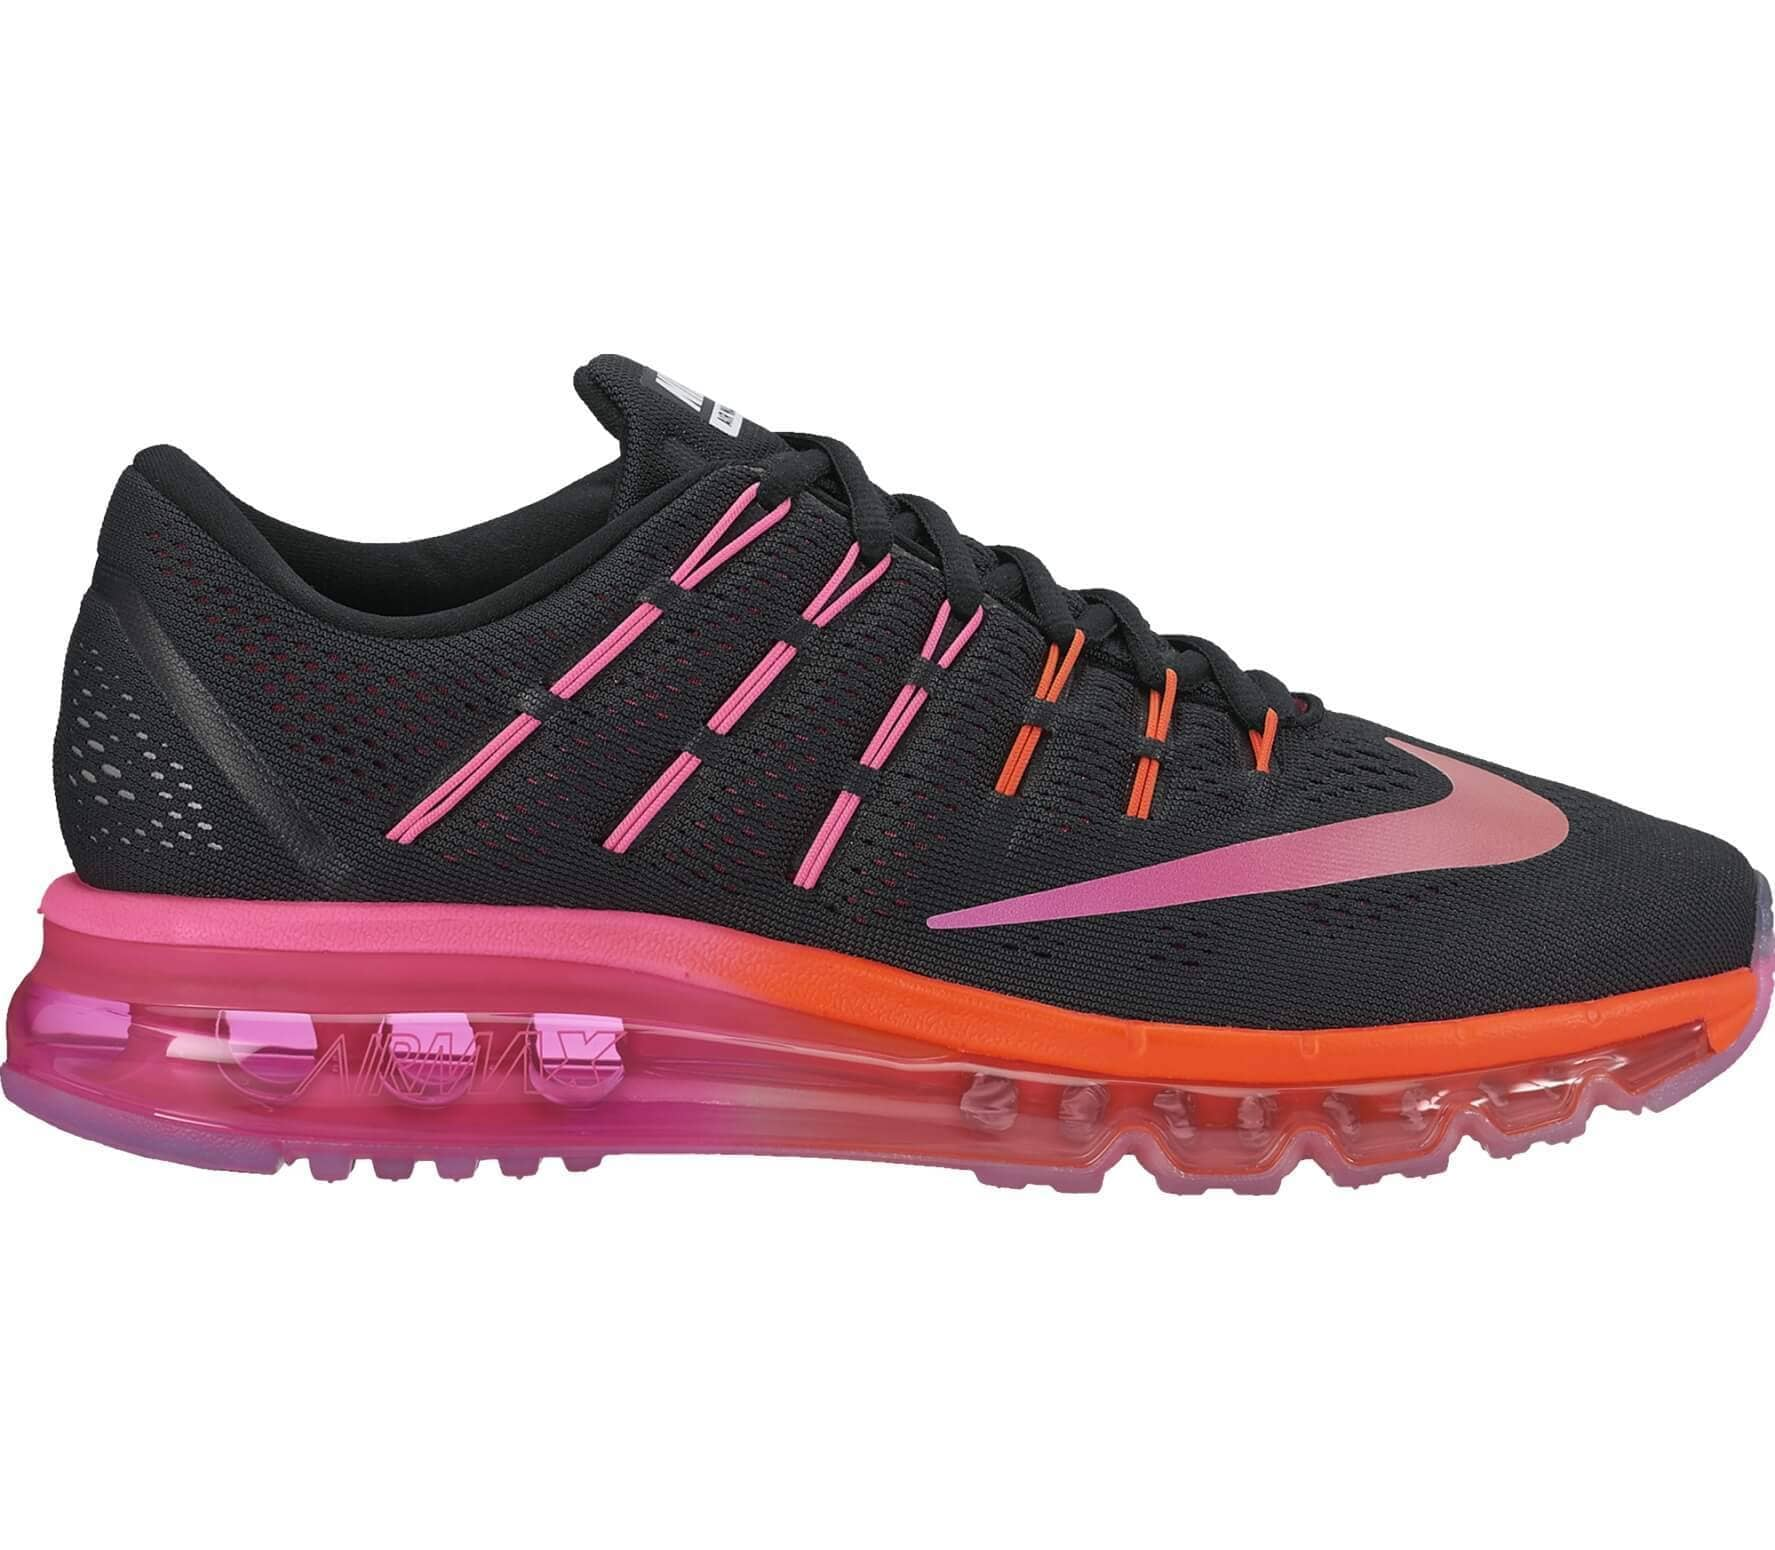 8d5f2439fd Nike - Air Max 2016 women's running shoes (black/pink) - buy it at ...